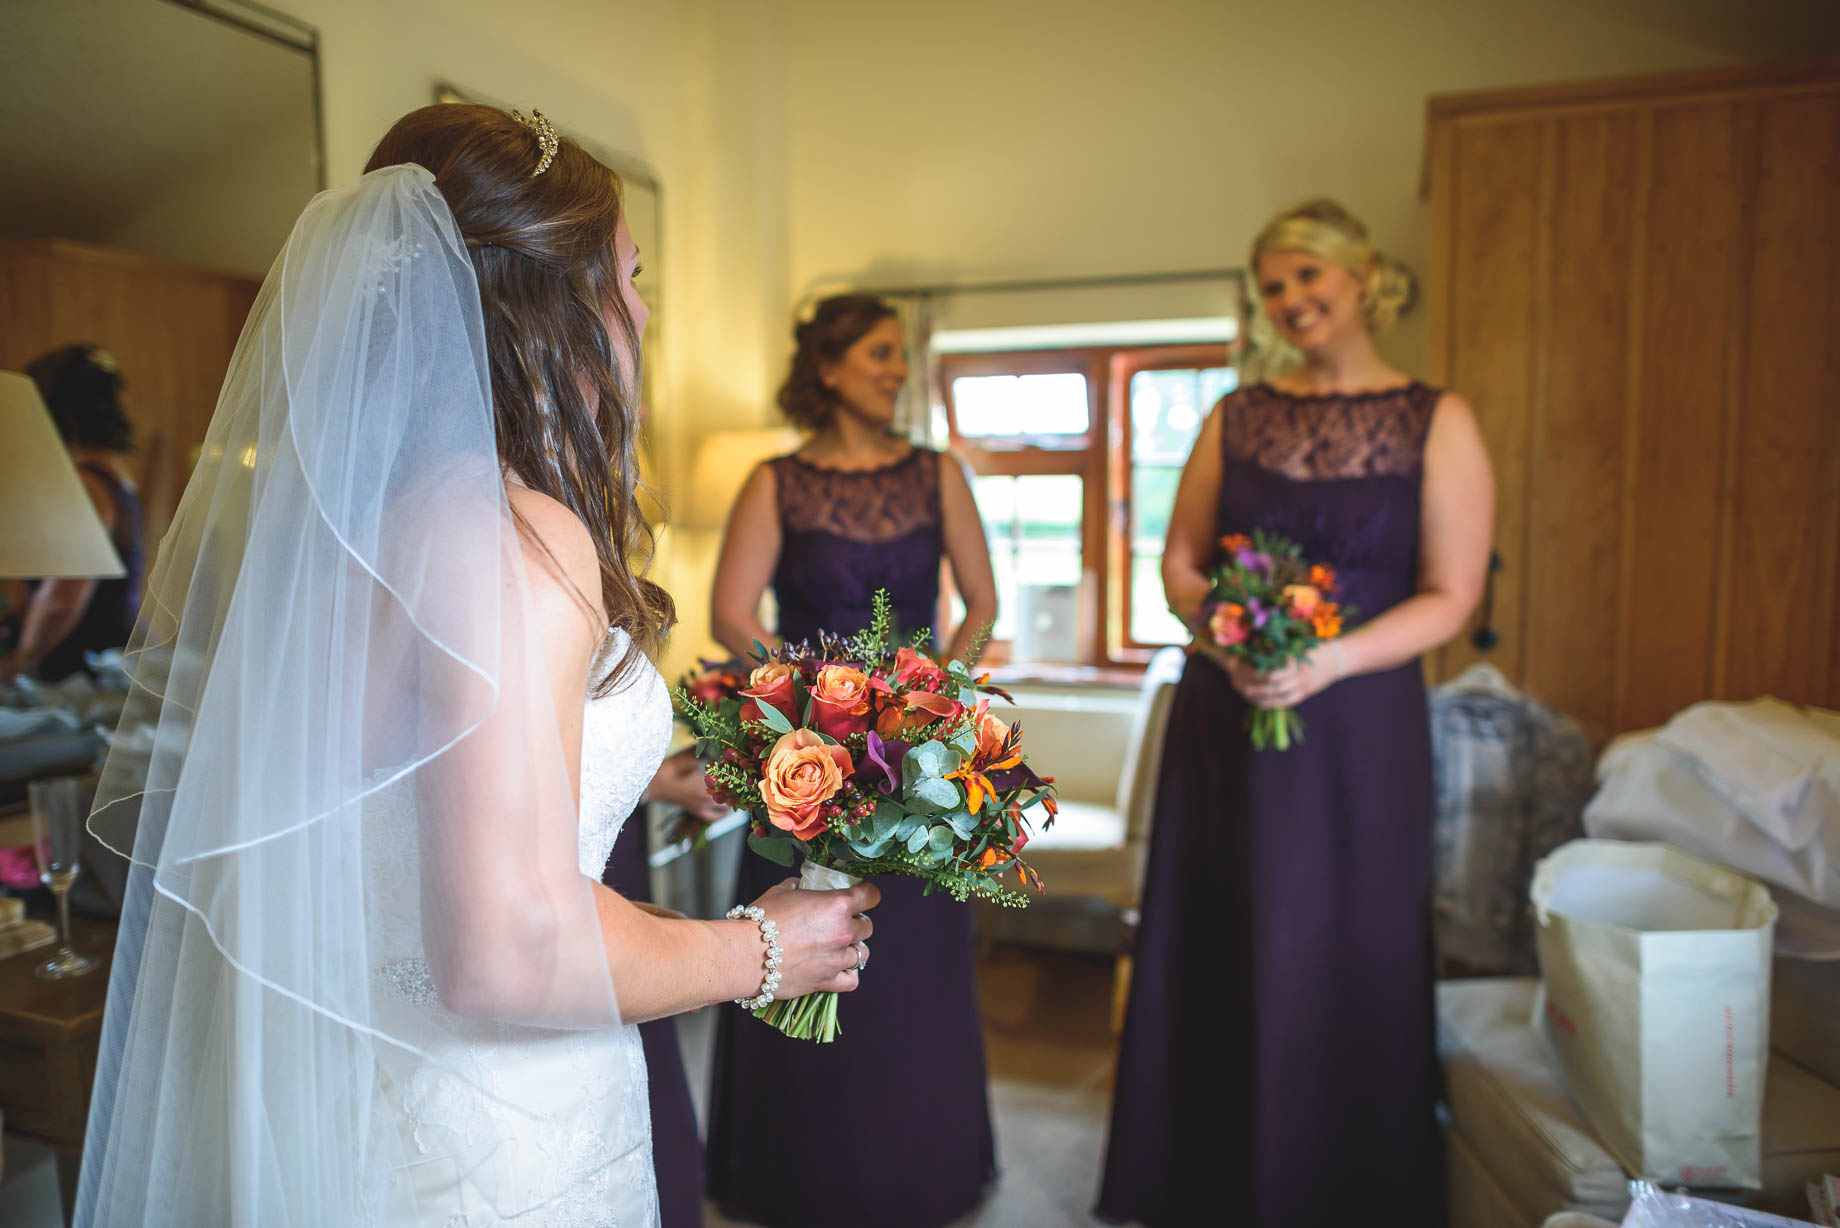 Gate Street Barn wedding photography - Guy Collier - Claire and Andy (47 of 192)